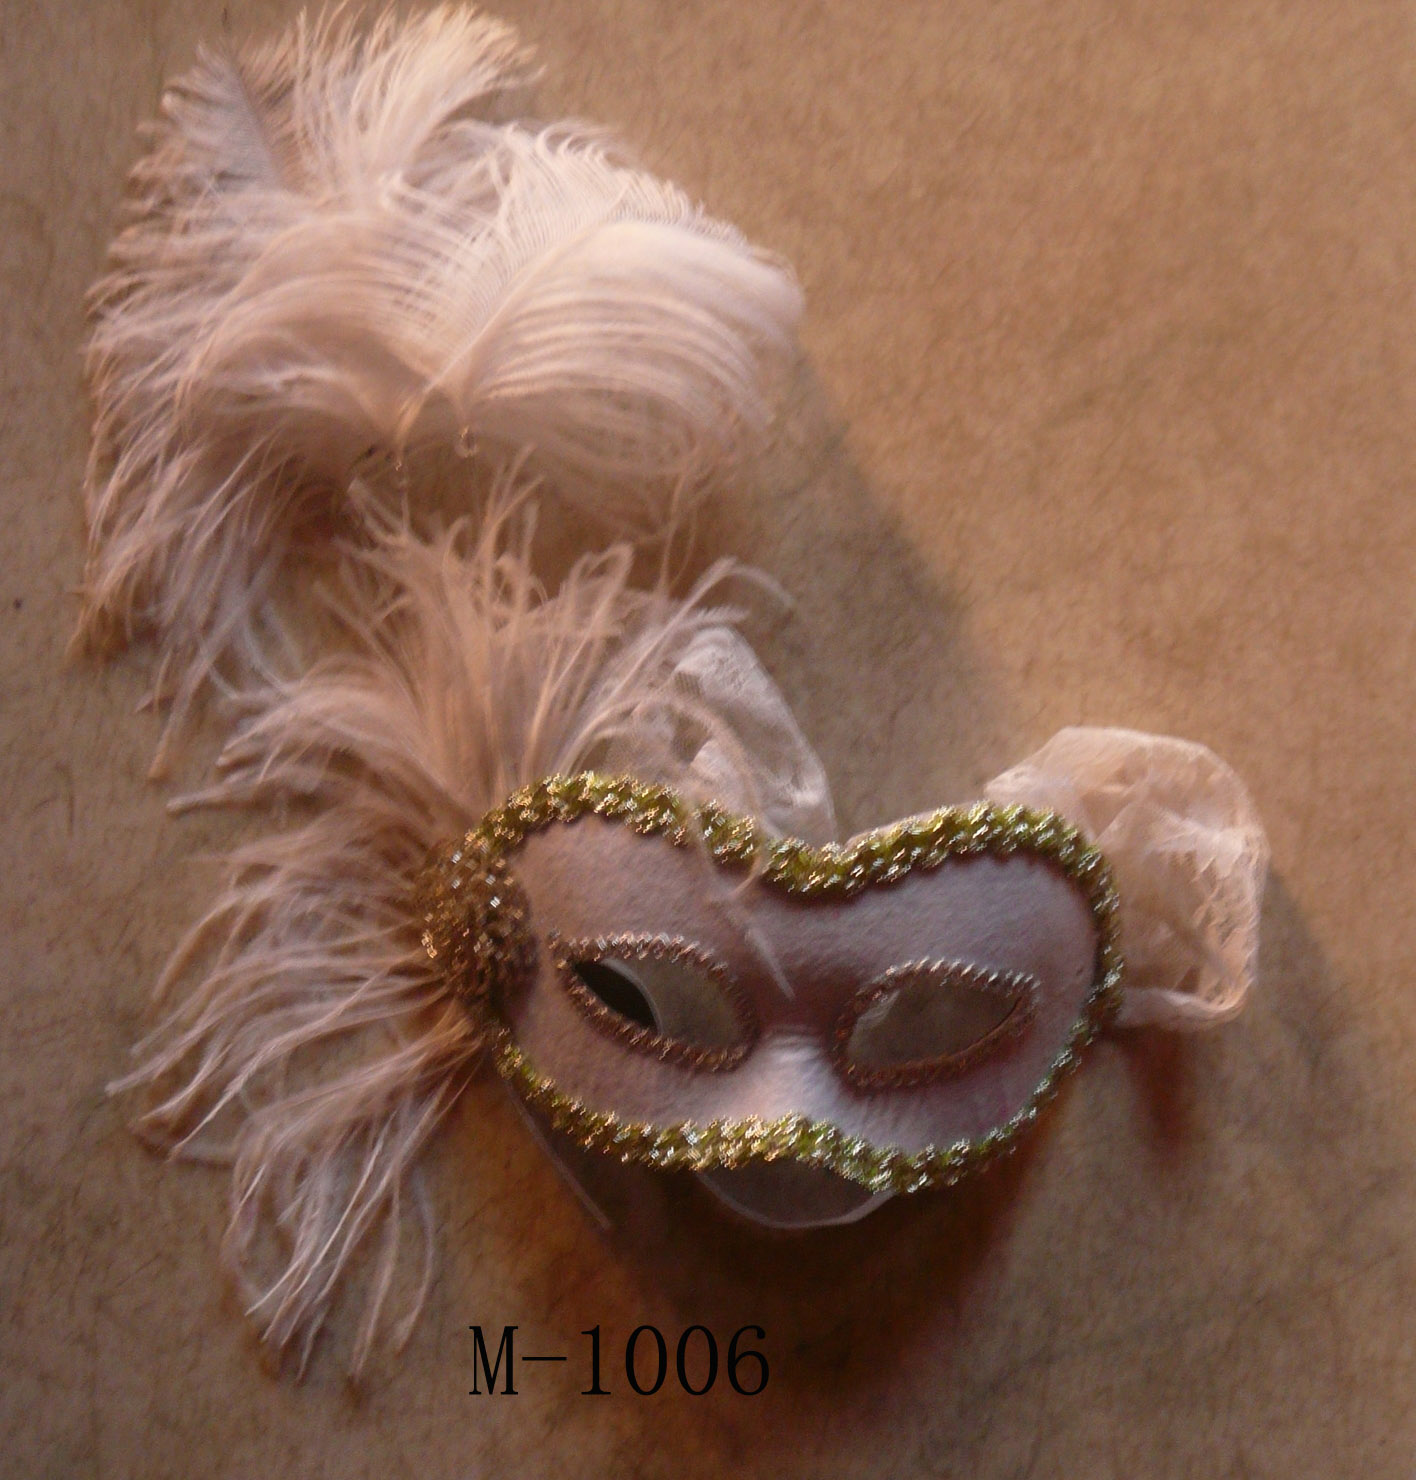 Cheap feather masks for sale - Made in China M-1006